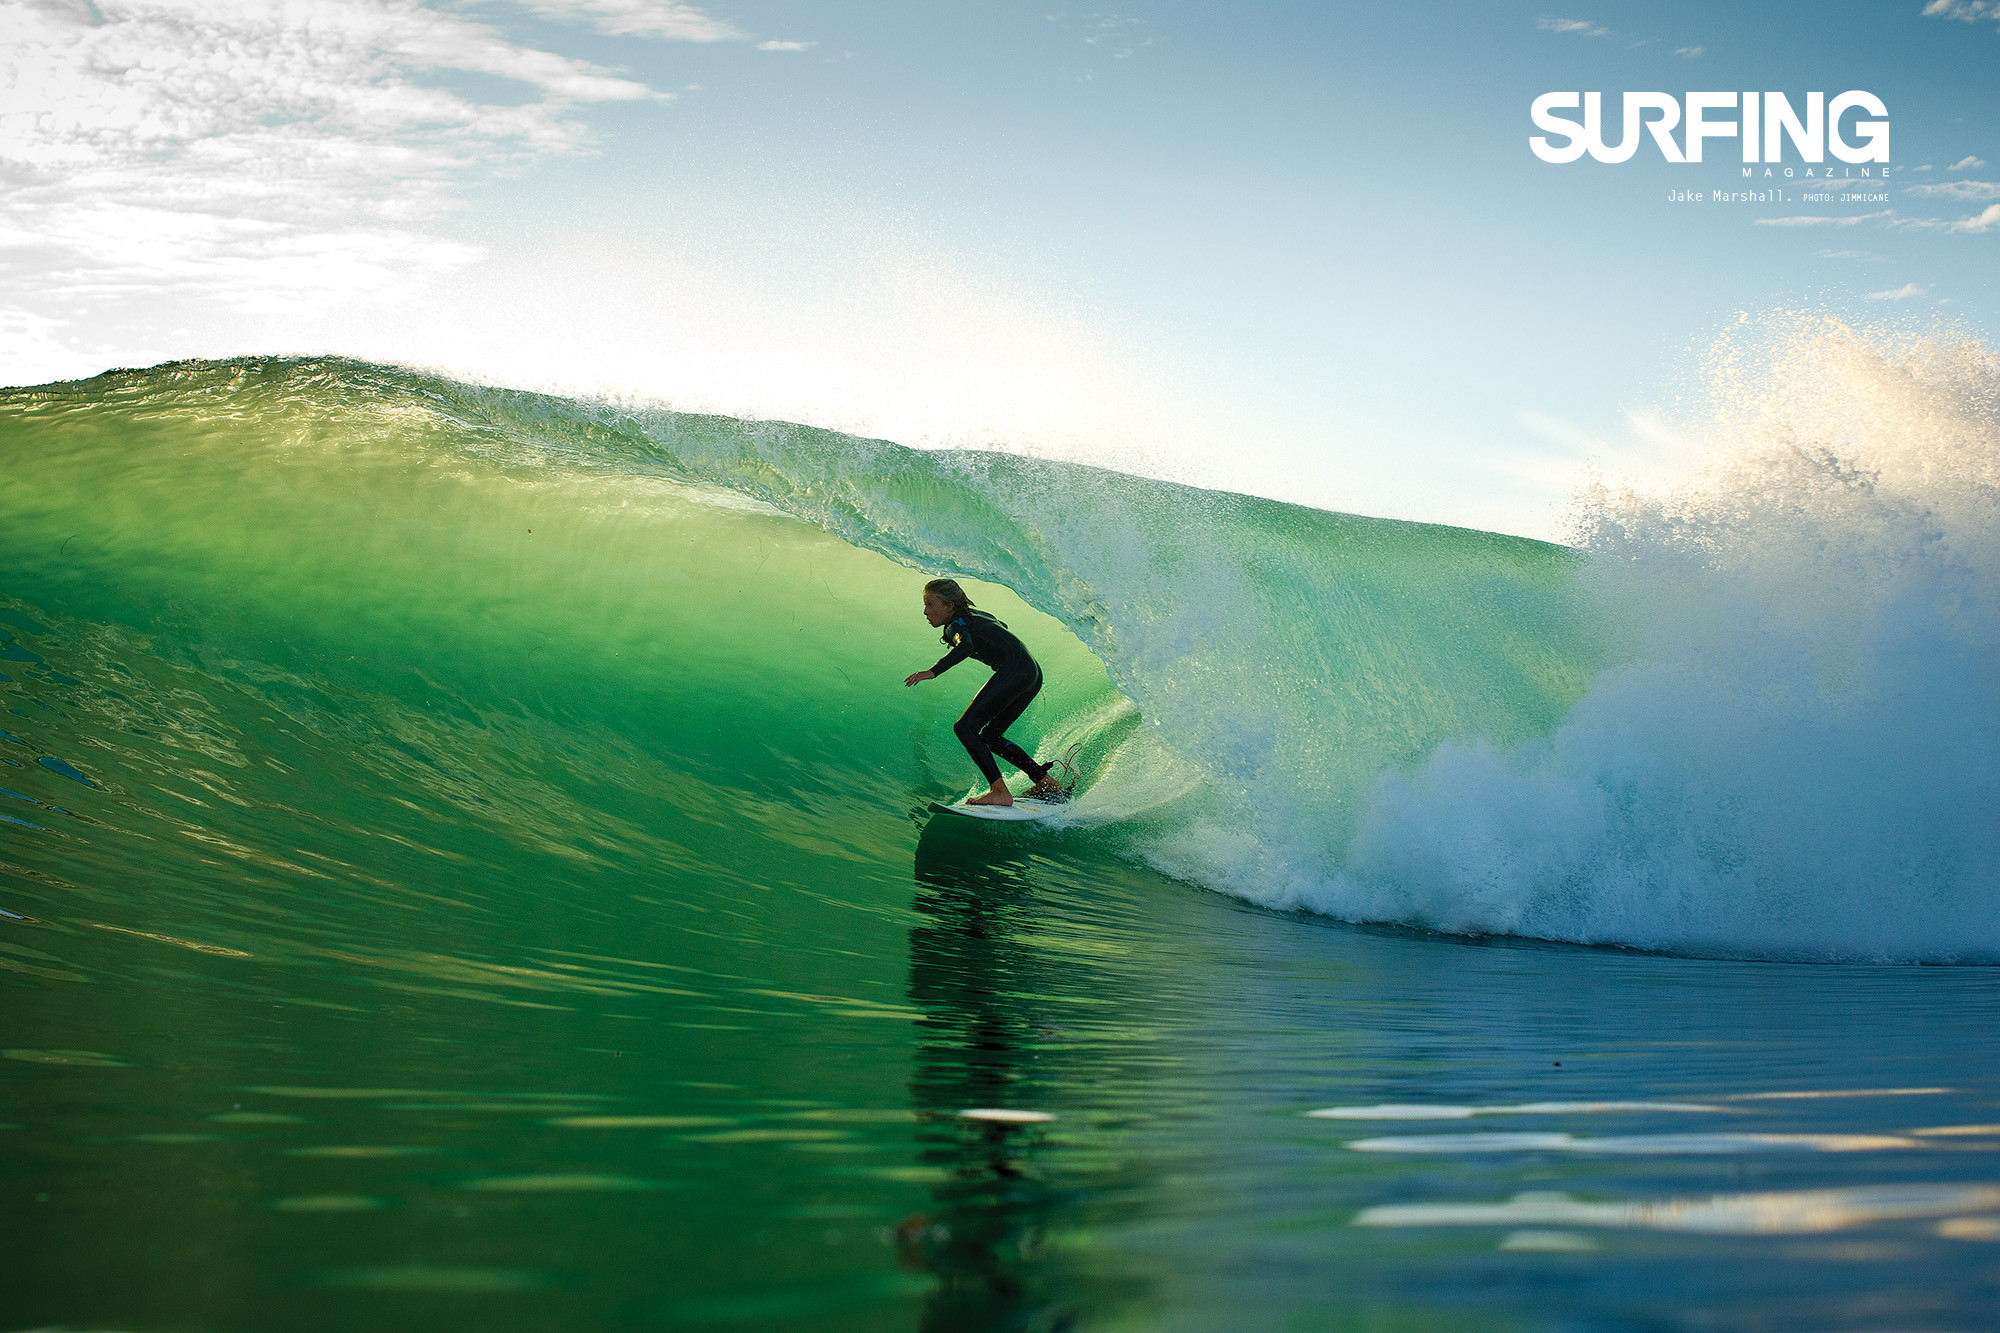 100% Quality HD Surfing Wallpapers   Background ID:6445713